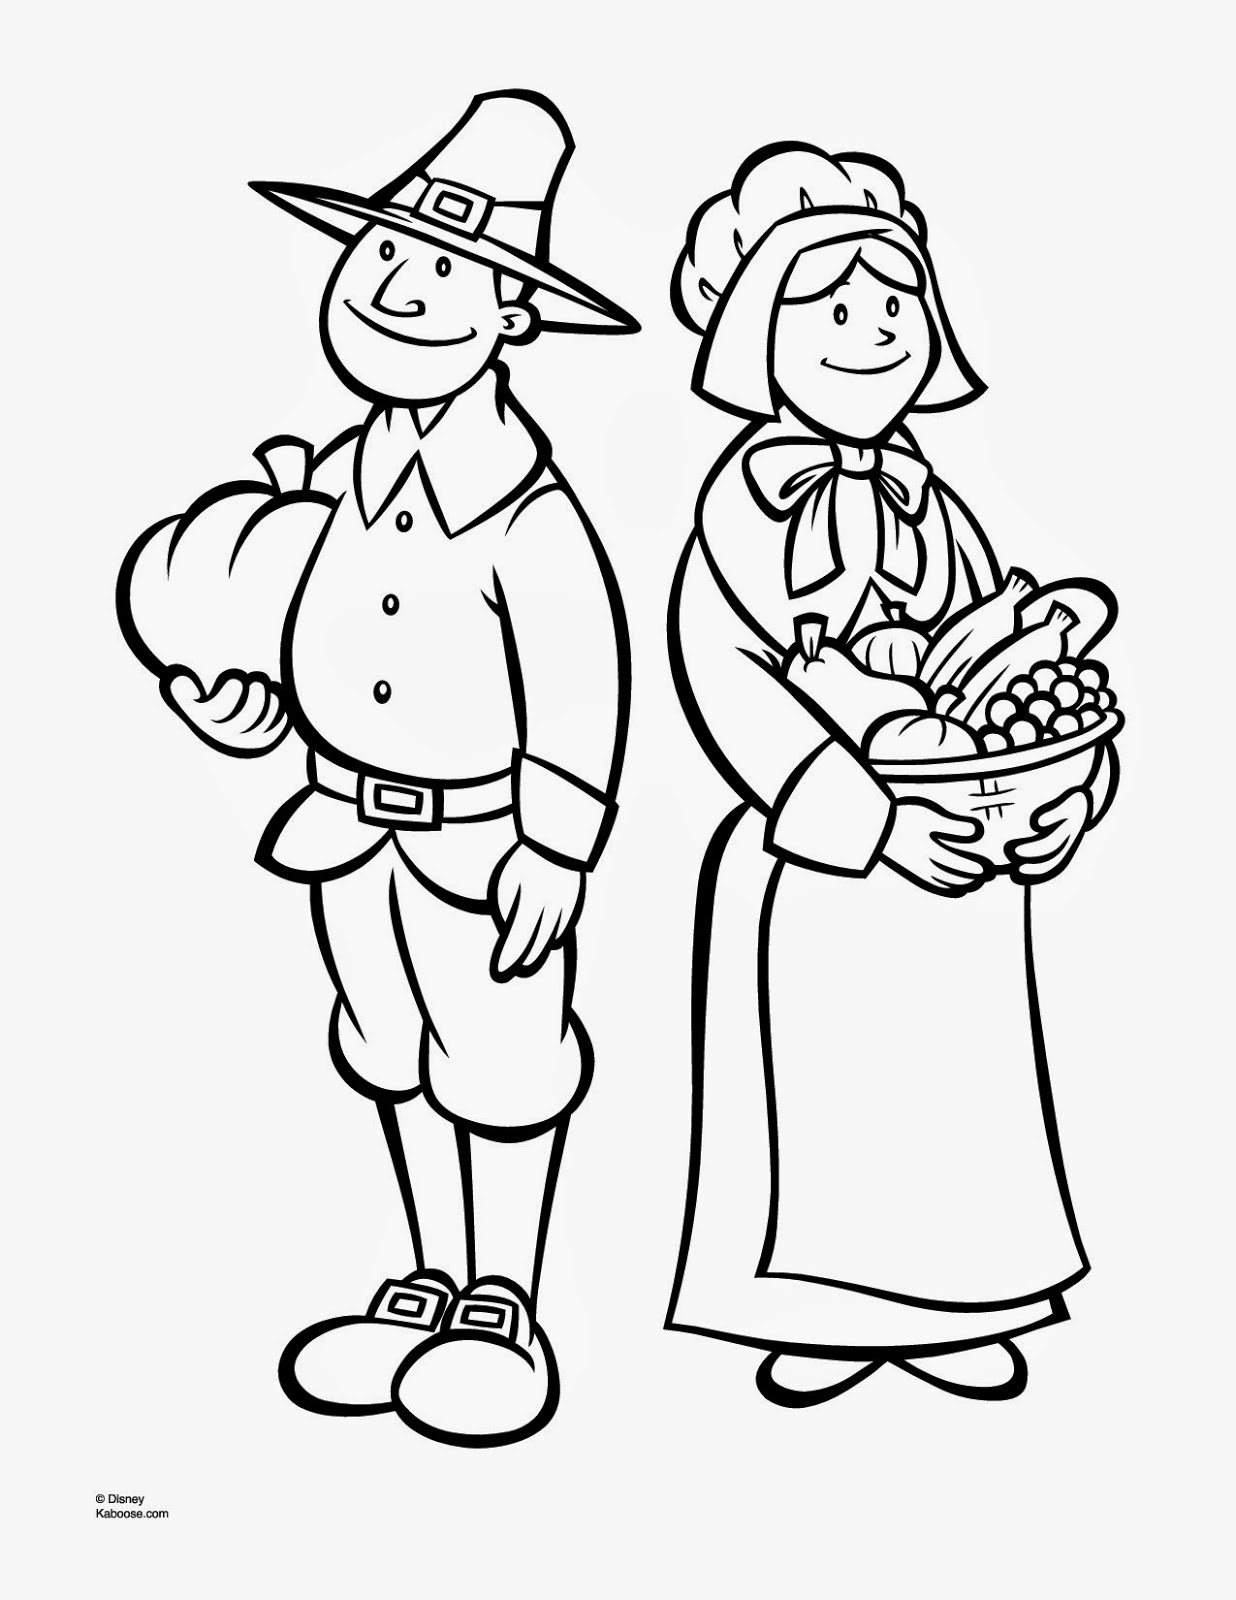 Free Coloring Pages Of Cute Pilgrims Pilgrim Coloring Pages Printable